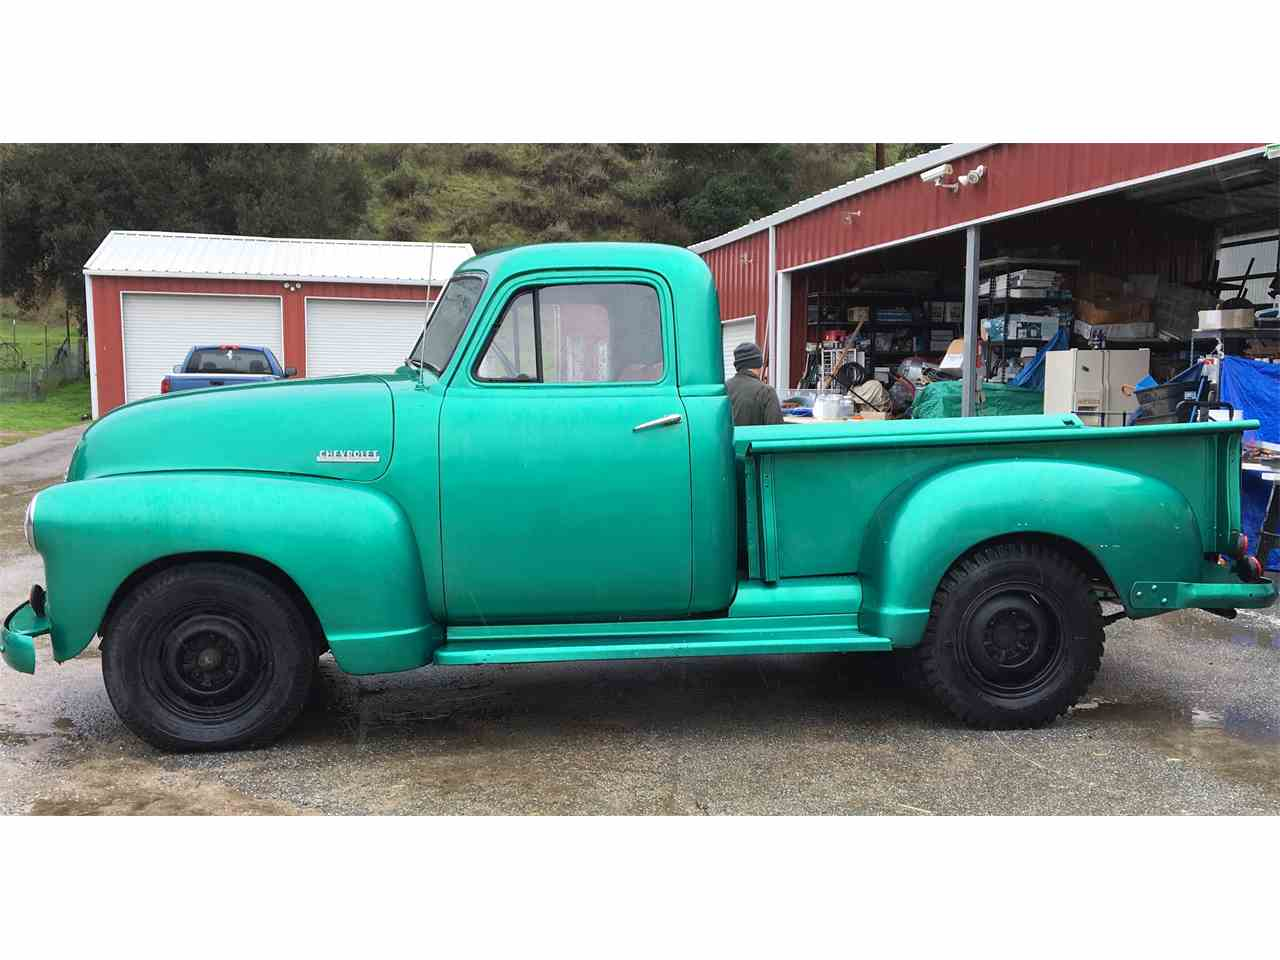 1951 Chevrolet Pickup for Sale on ClassicCars.com - 13 Available